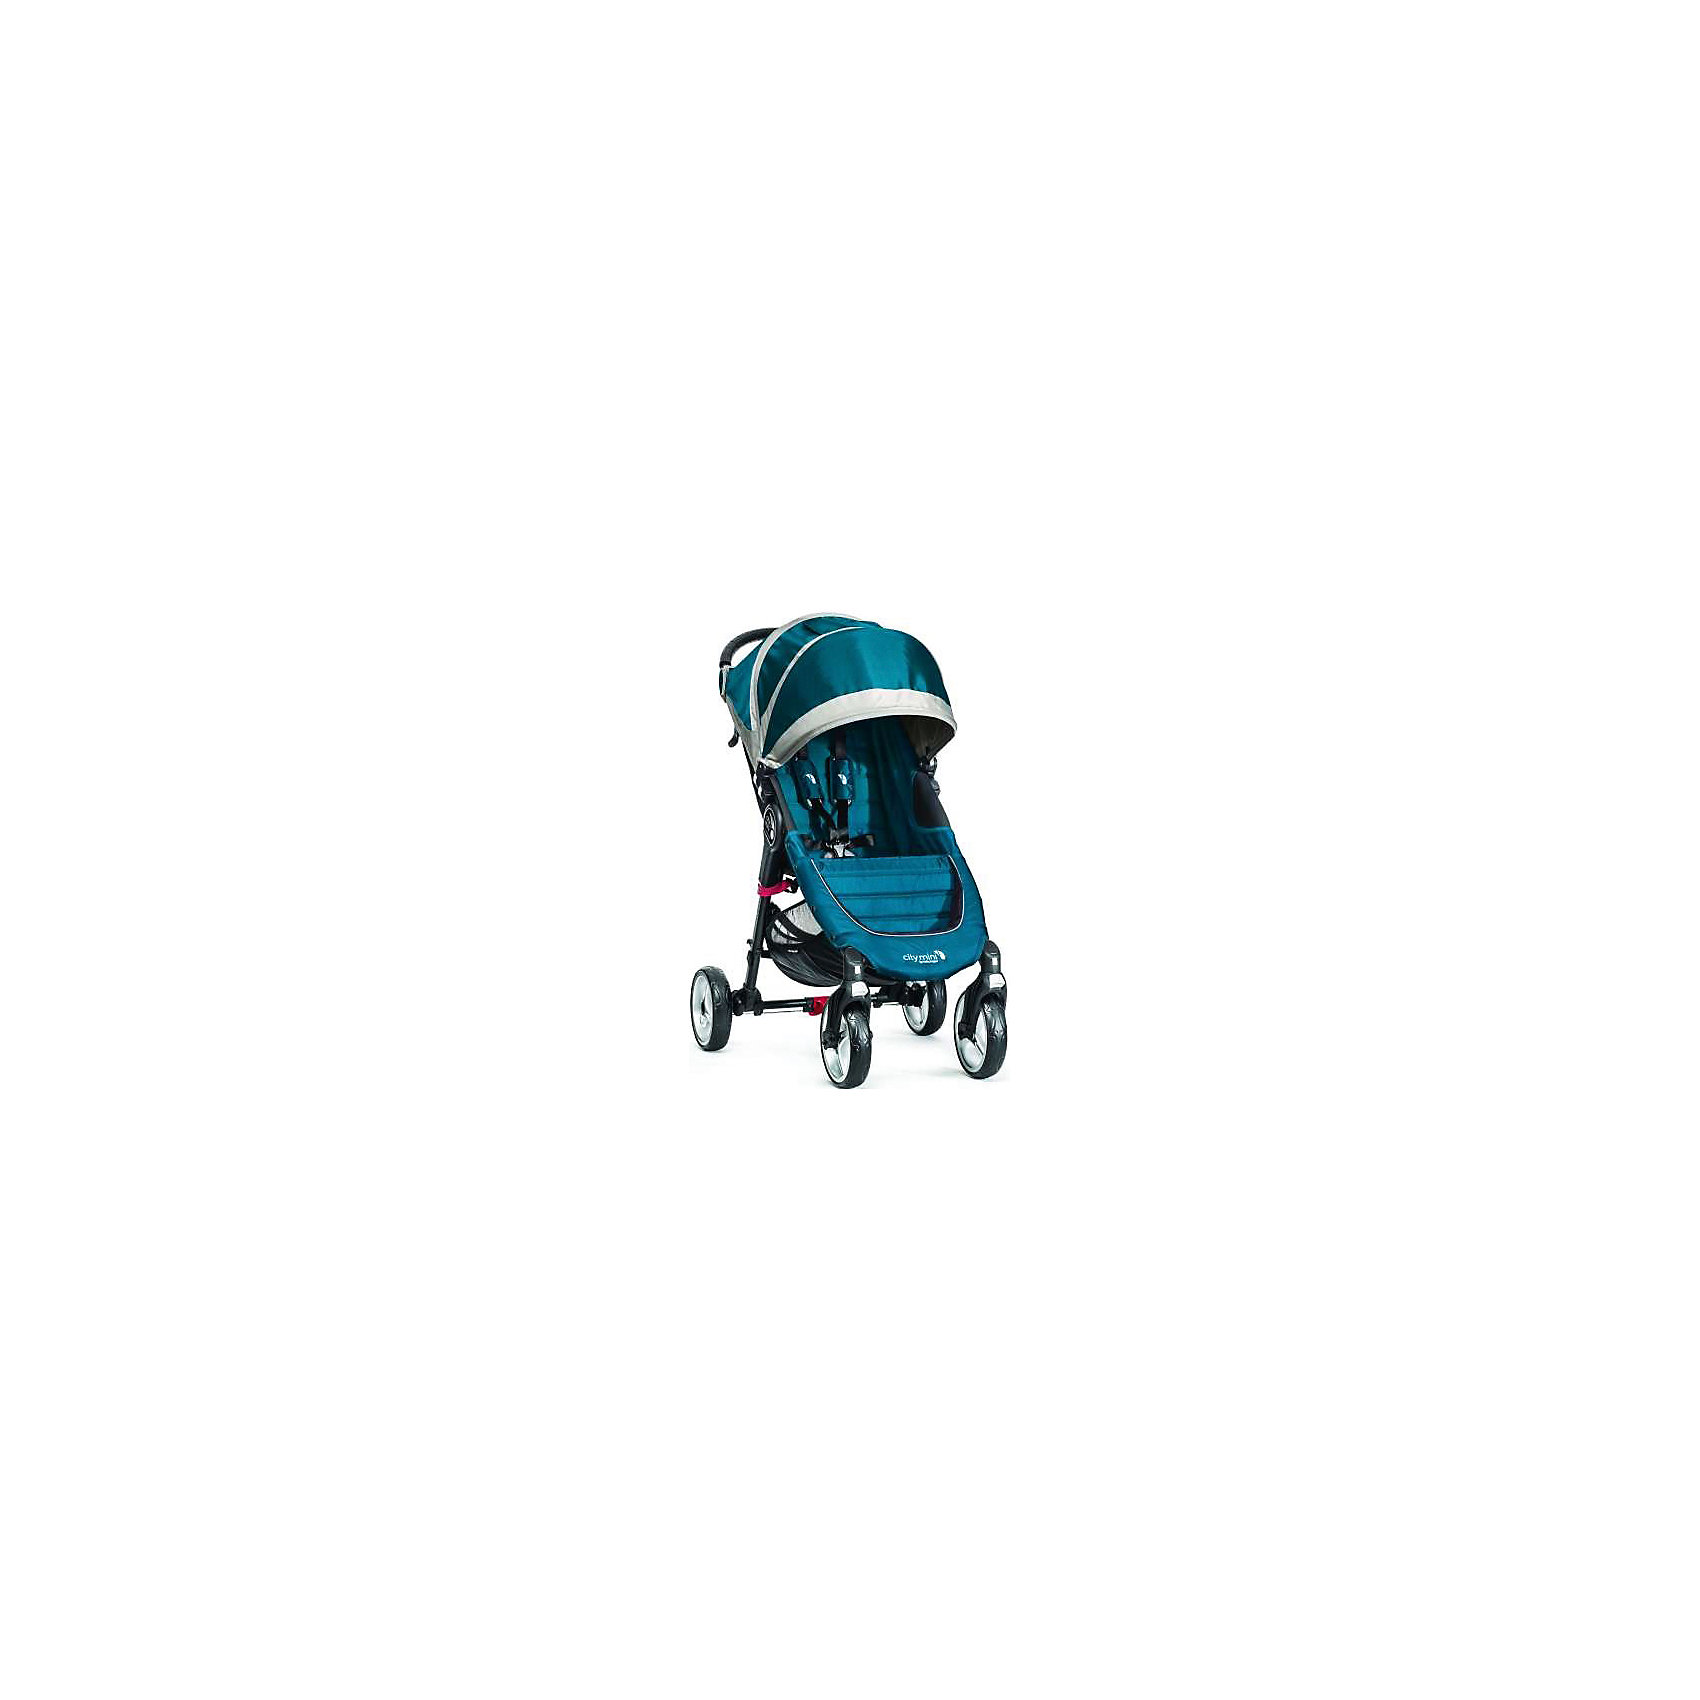 Baby Jogger Прогулочная коляска City Mini Single 4Wheel, Baby Jogger, бирюзовый-серый прогулочная коляска liko baby city style bt 109 grey